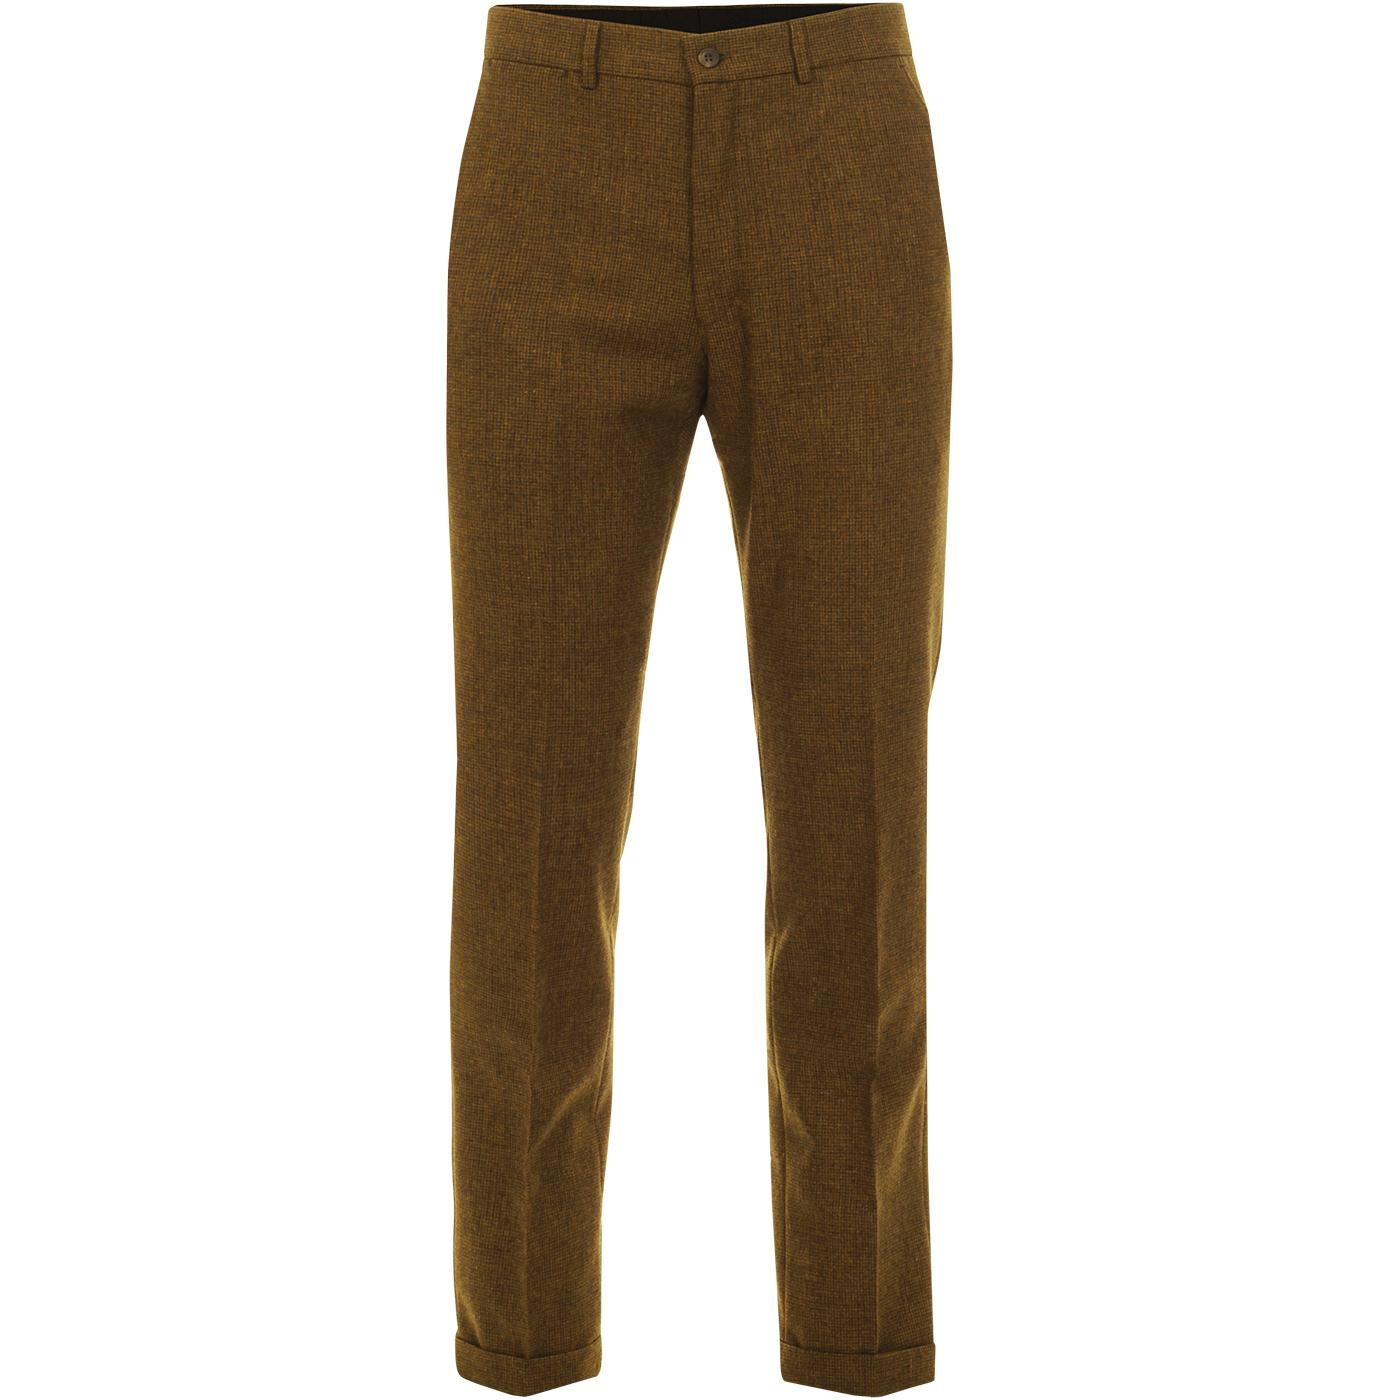 GIBSON LONDON Mod Puppytooth Trousers (Old Gold)